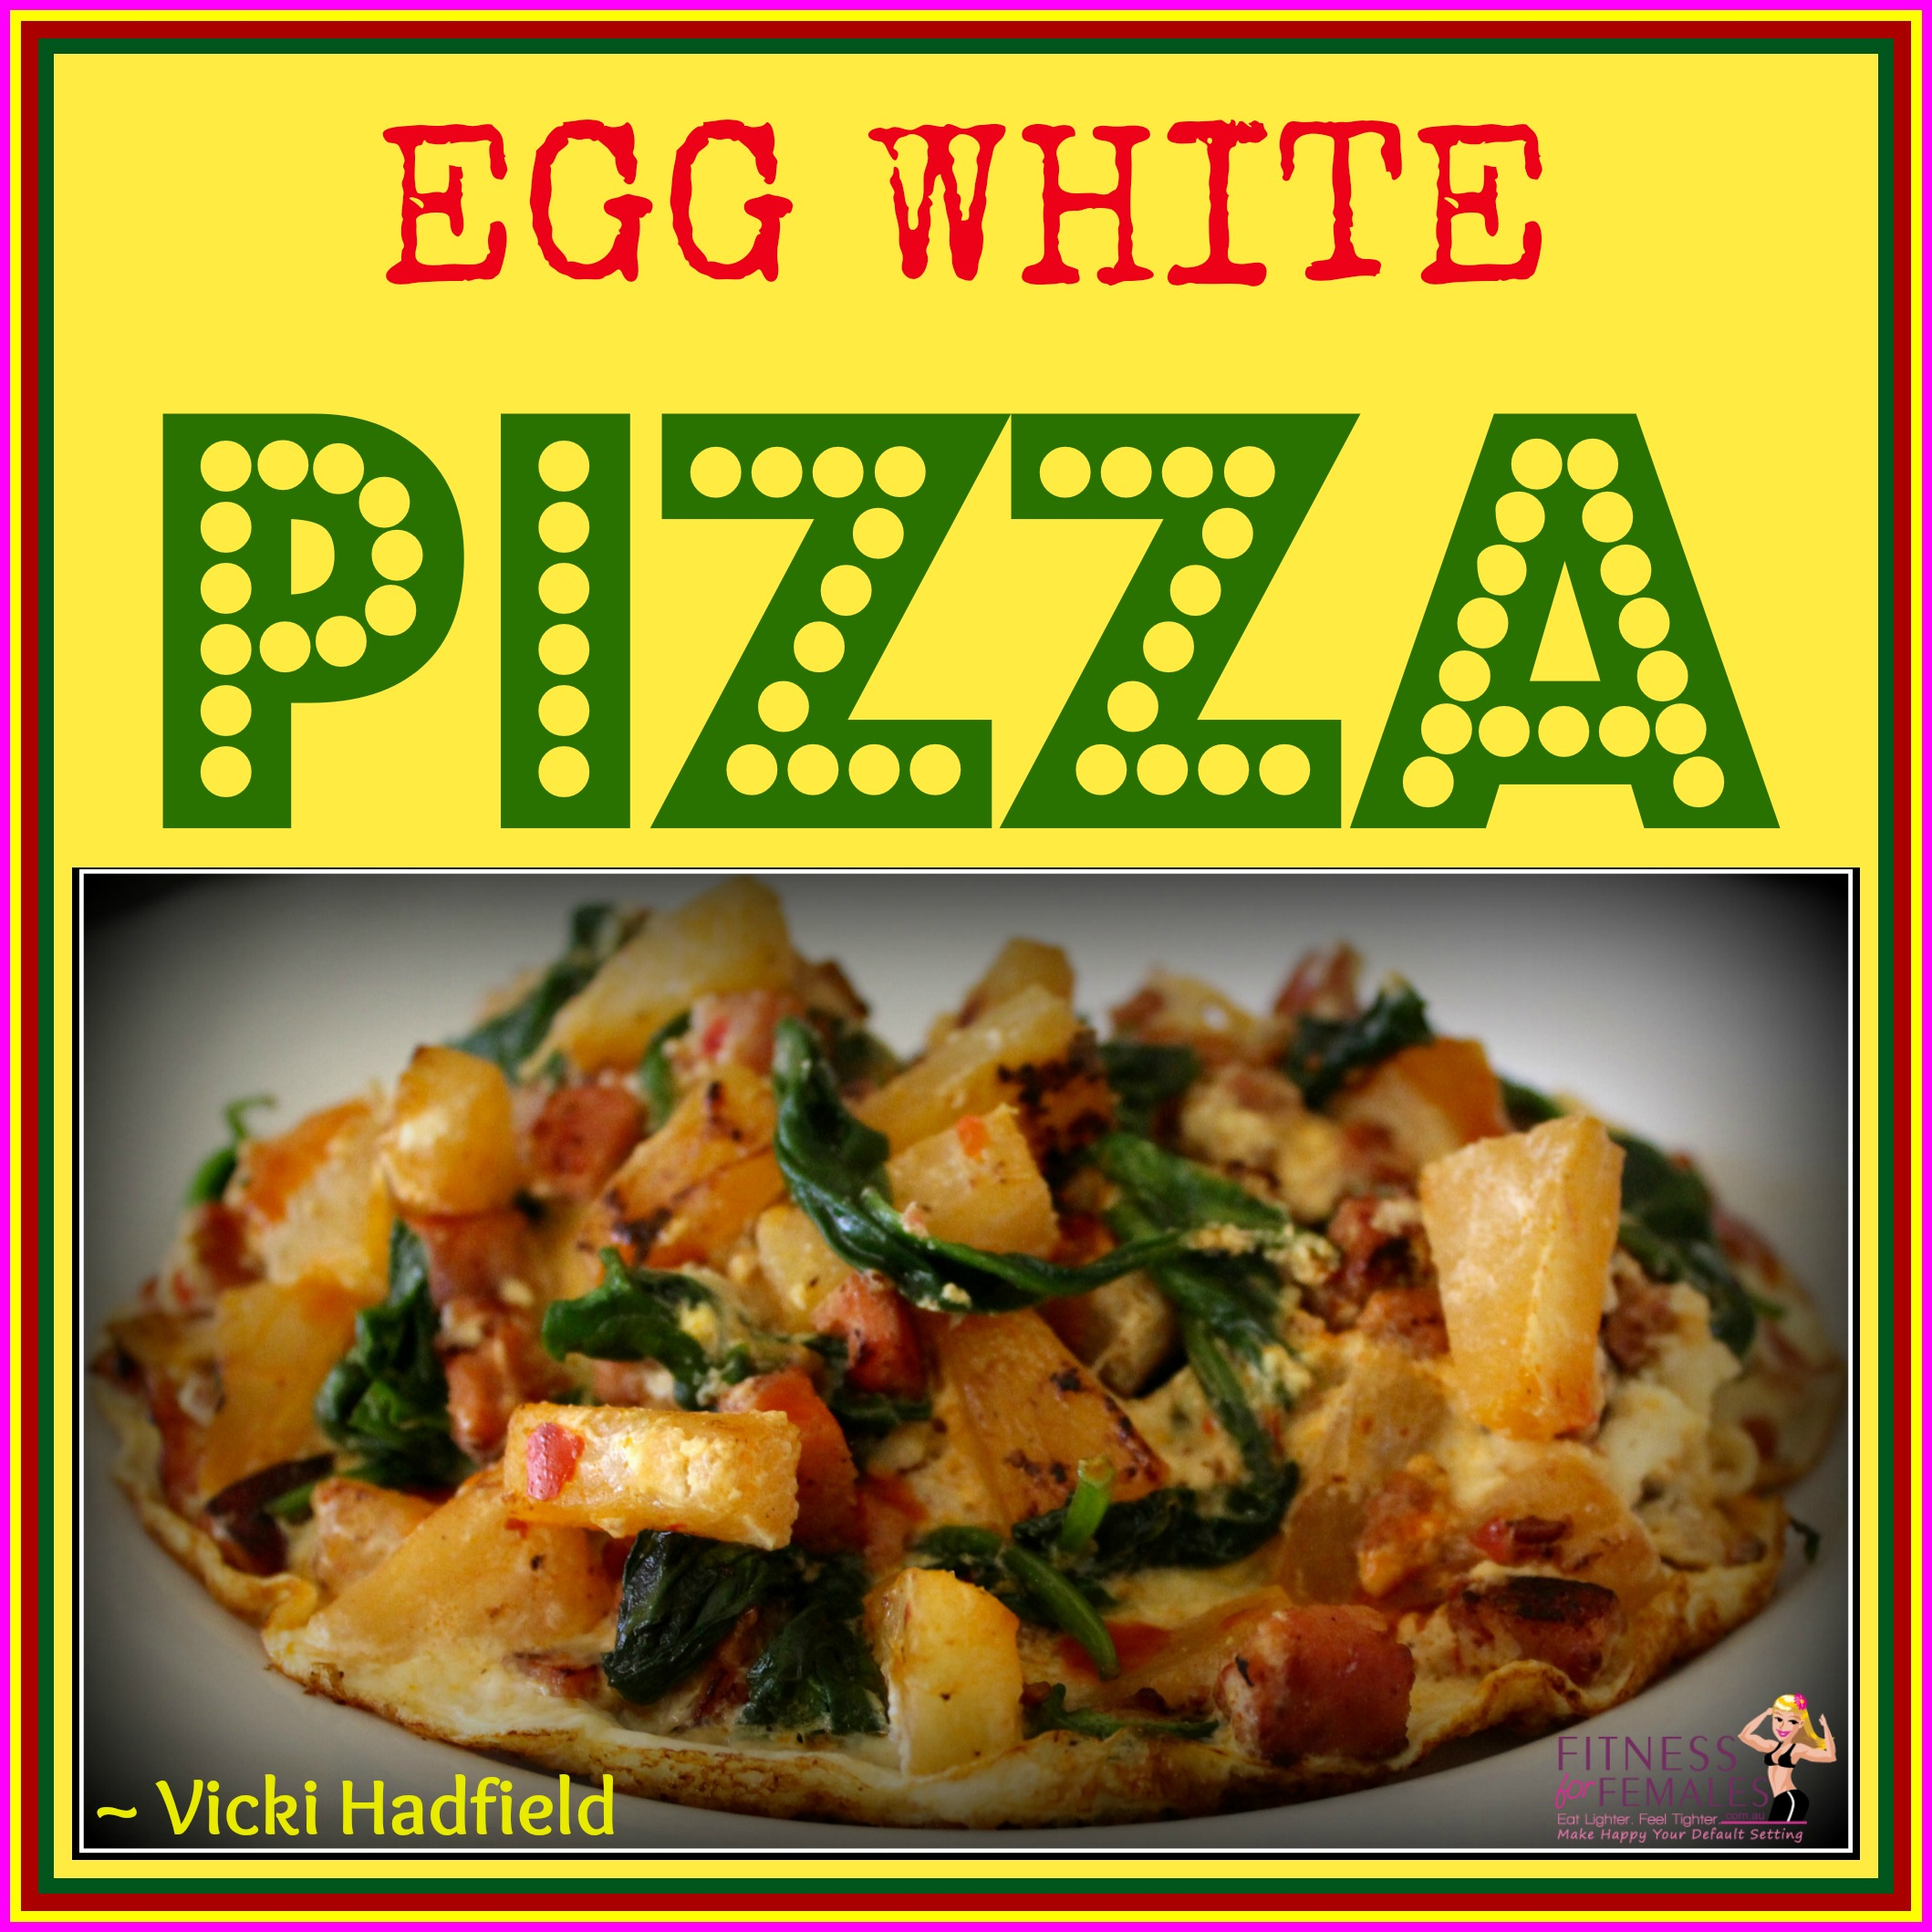 Egg White Pizza